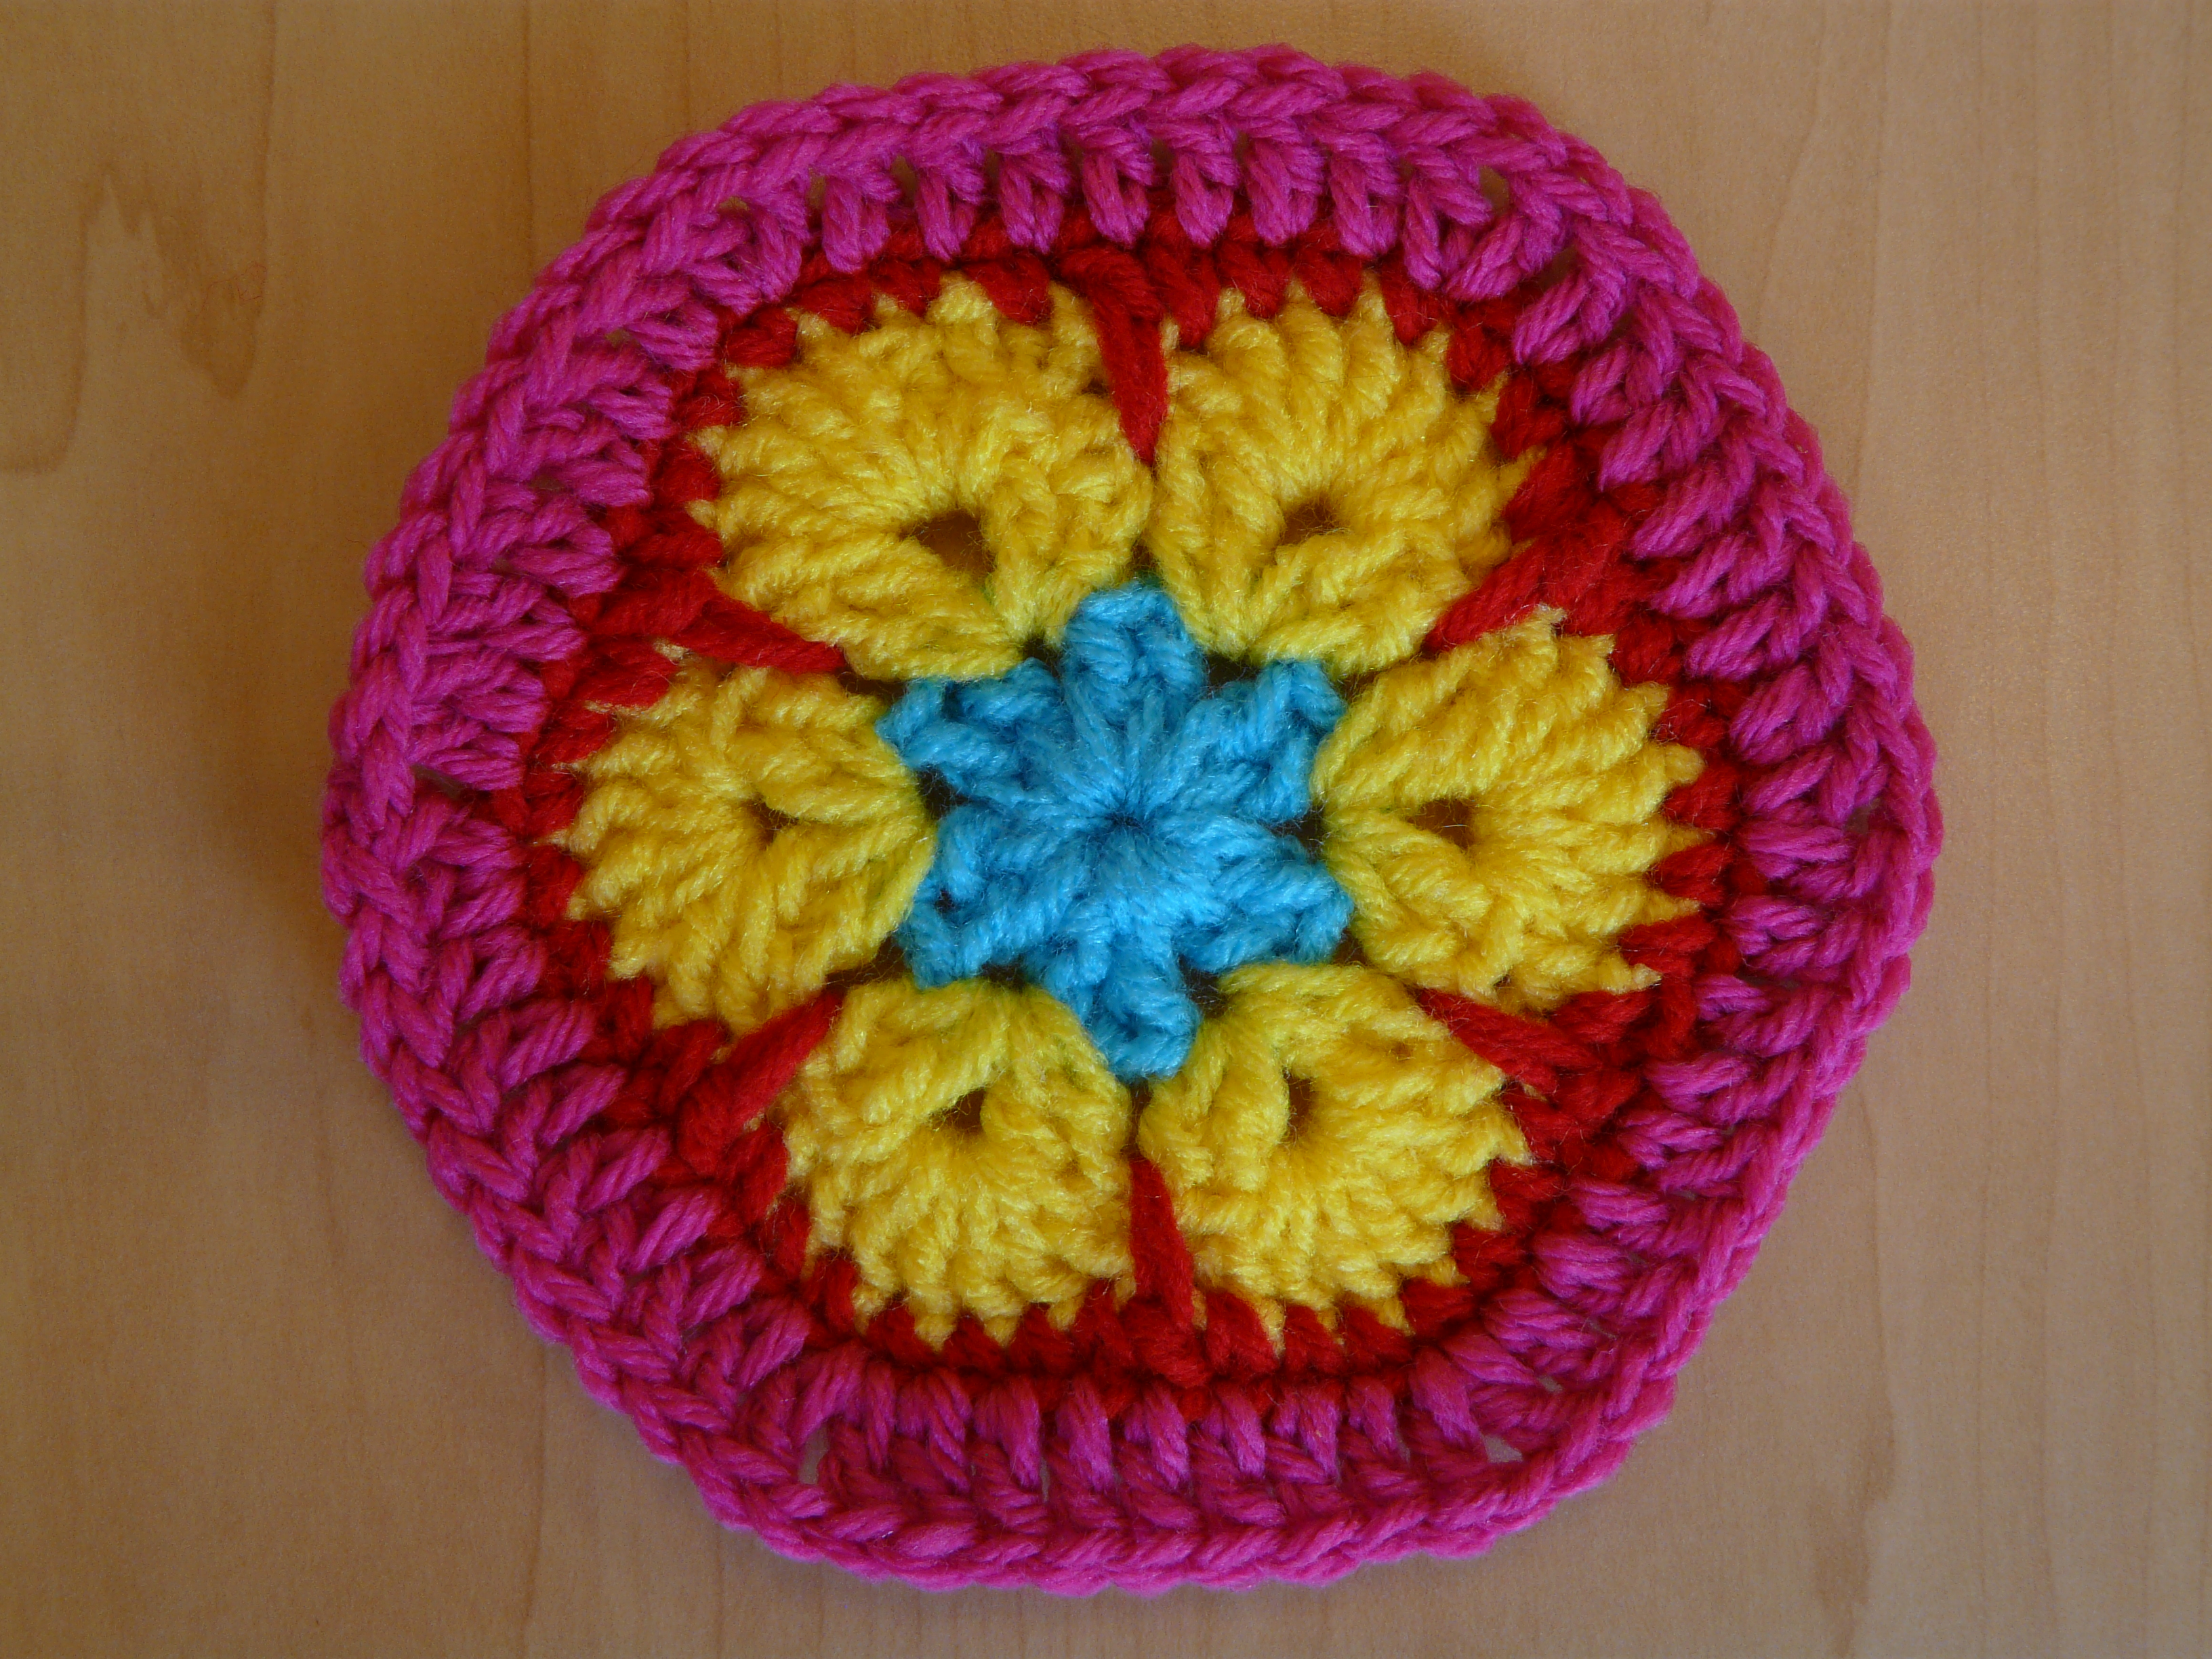 1000+ images about Crochet - African Flower Colorways on ...